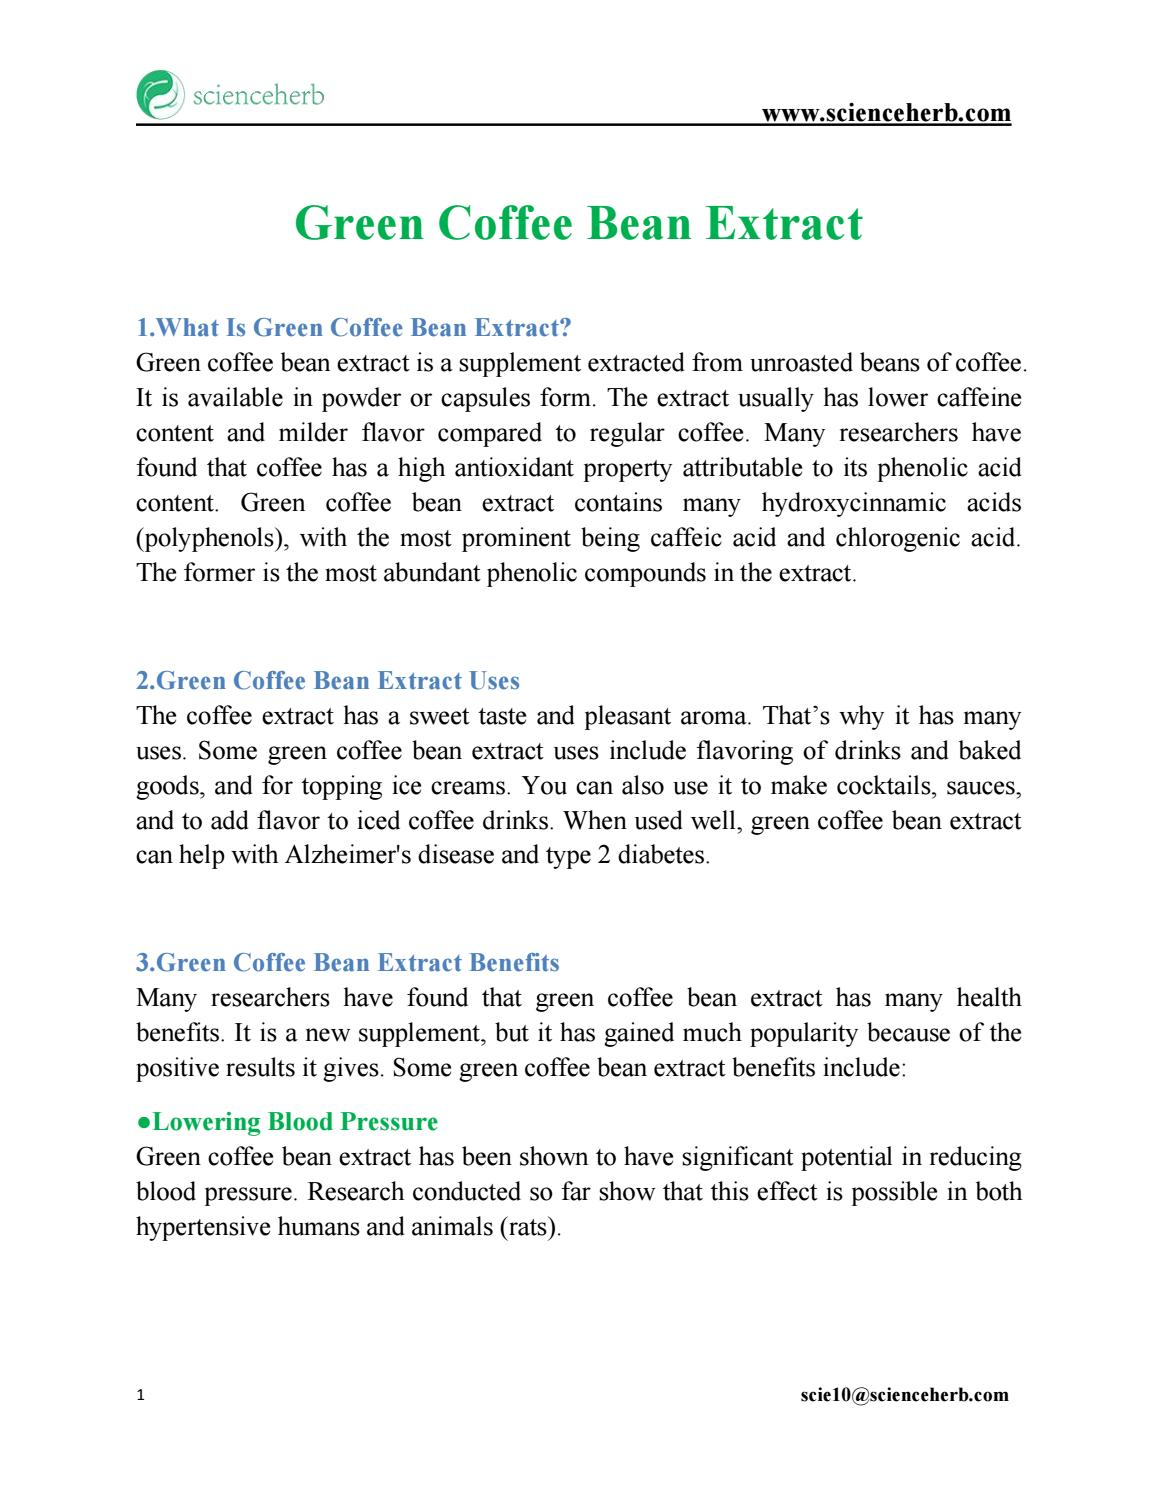 Everything You Need To Know About Green Coffee Bean Extract By